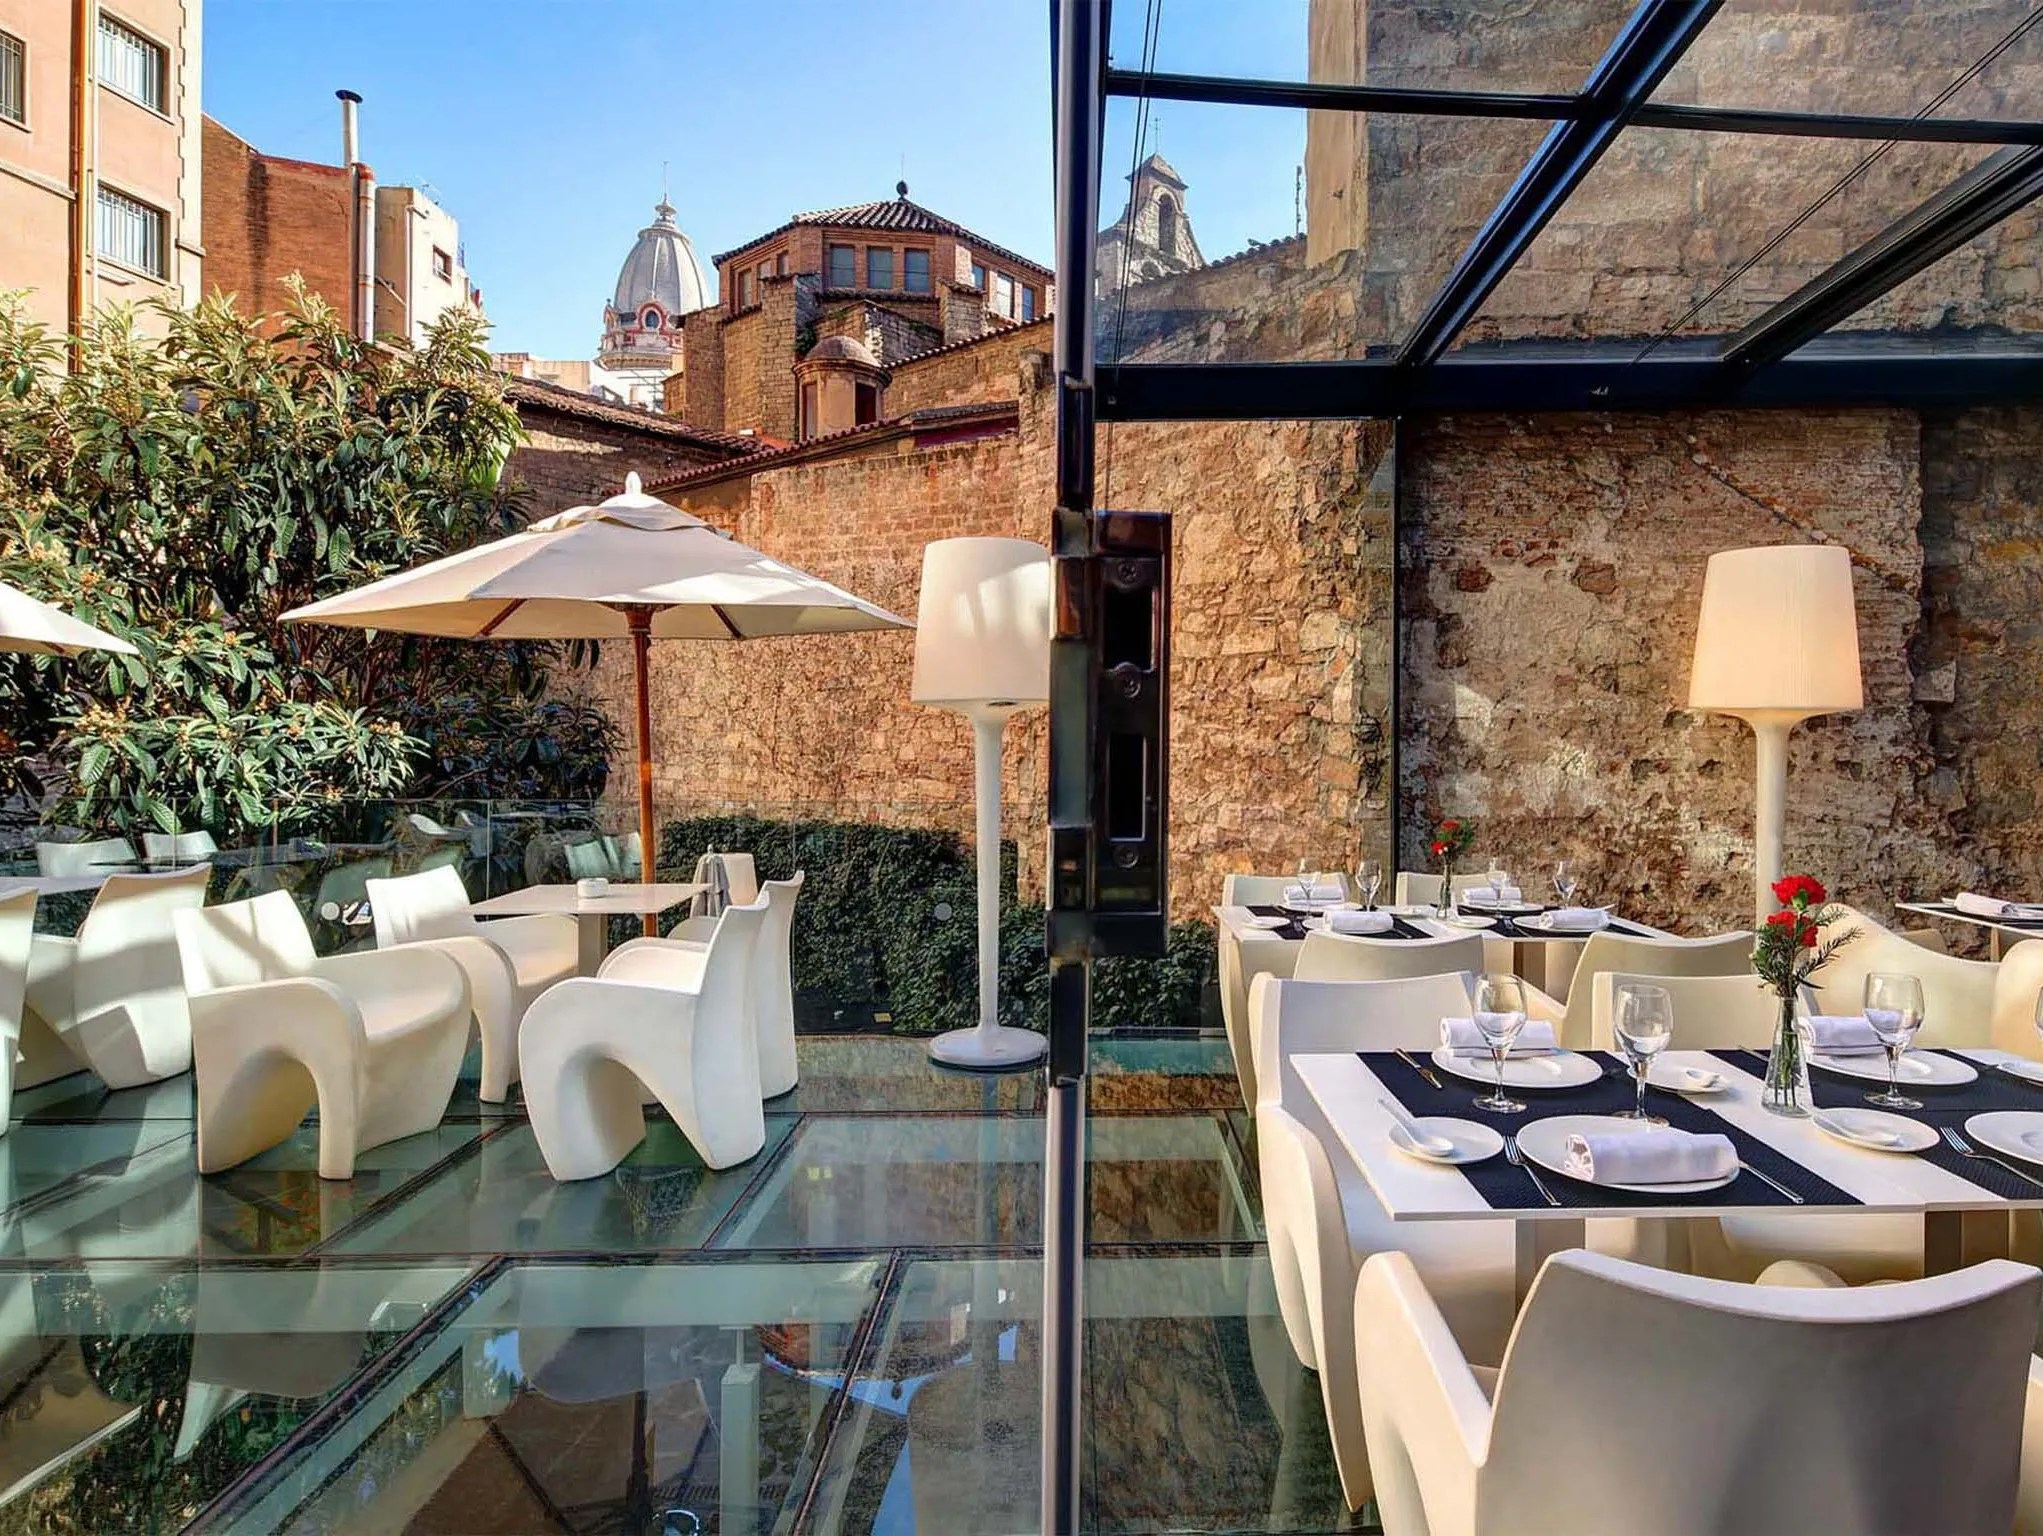 Barcelona hotels Bookingcoms 20 best reviewed properties